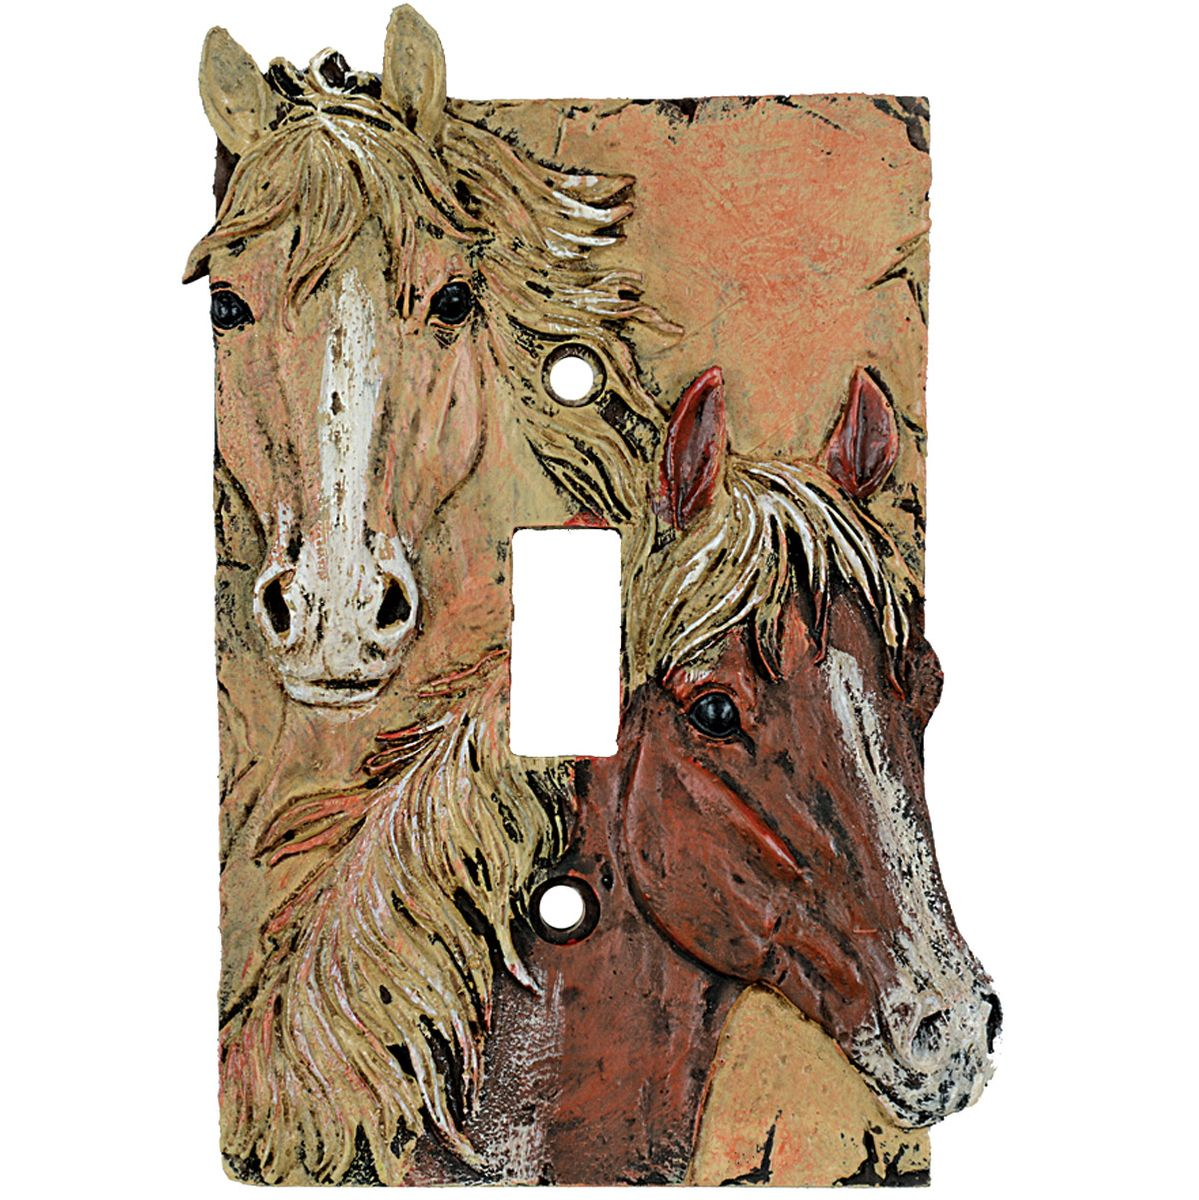 Sunrise Horses Single Switch Cover - BACKORDERED Until 5/28/2021